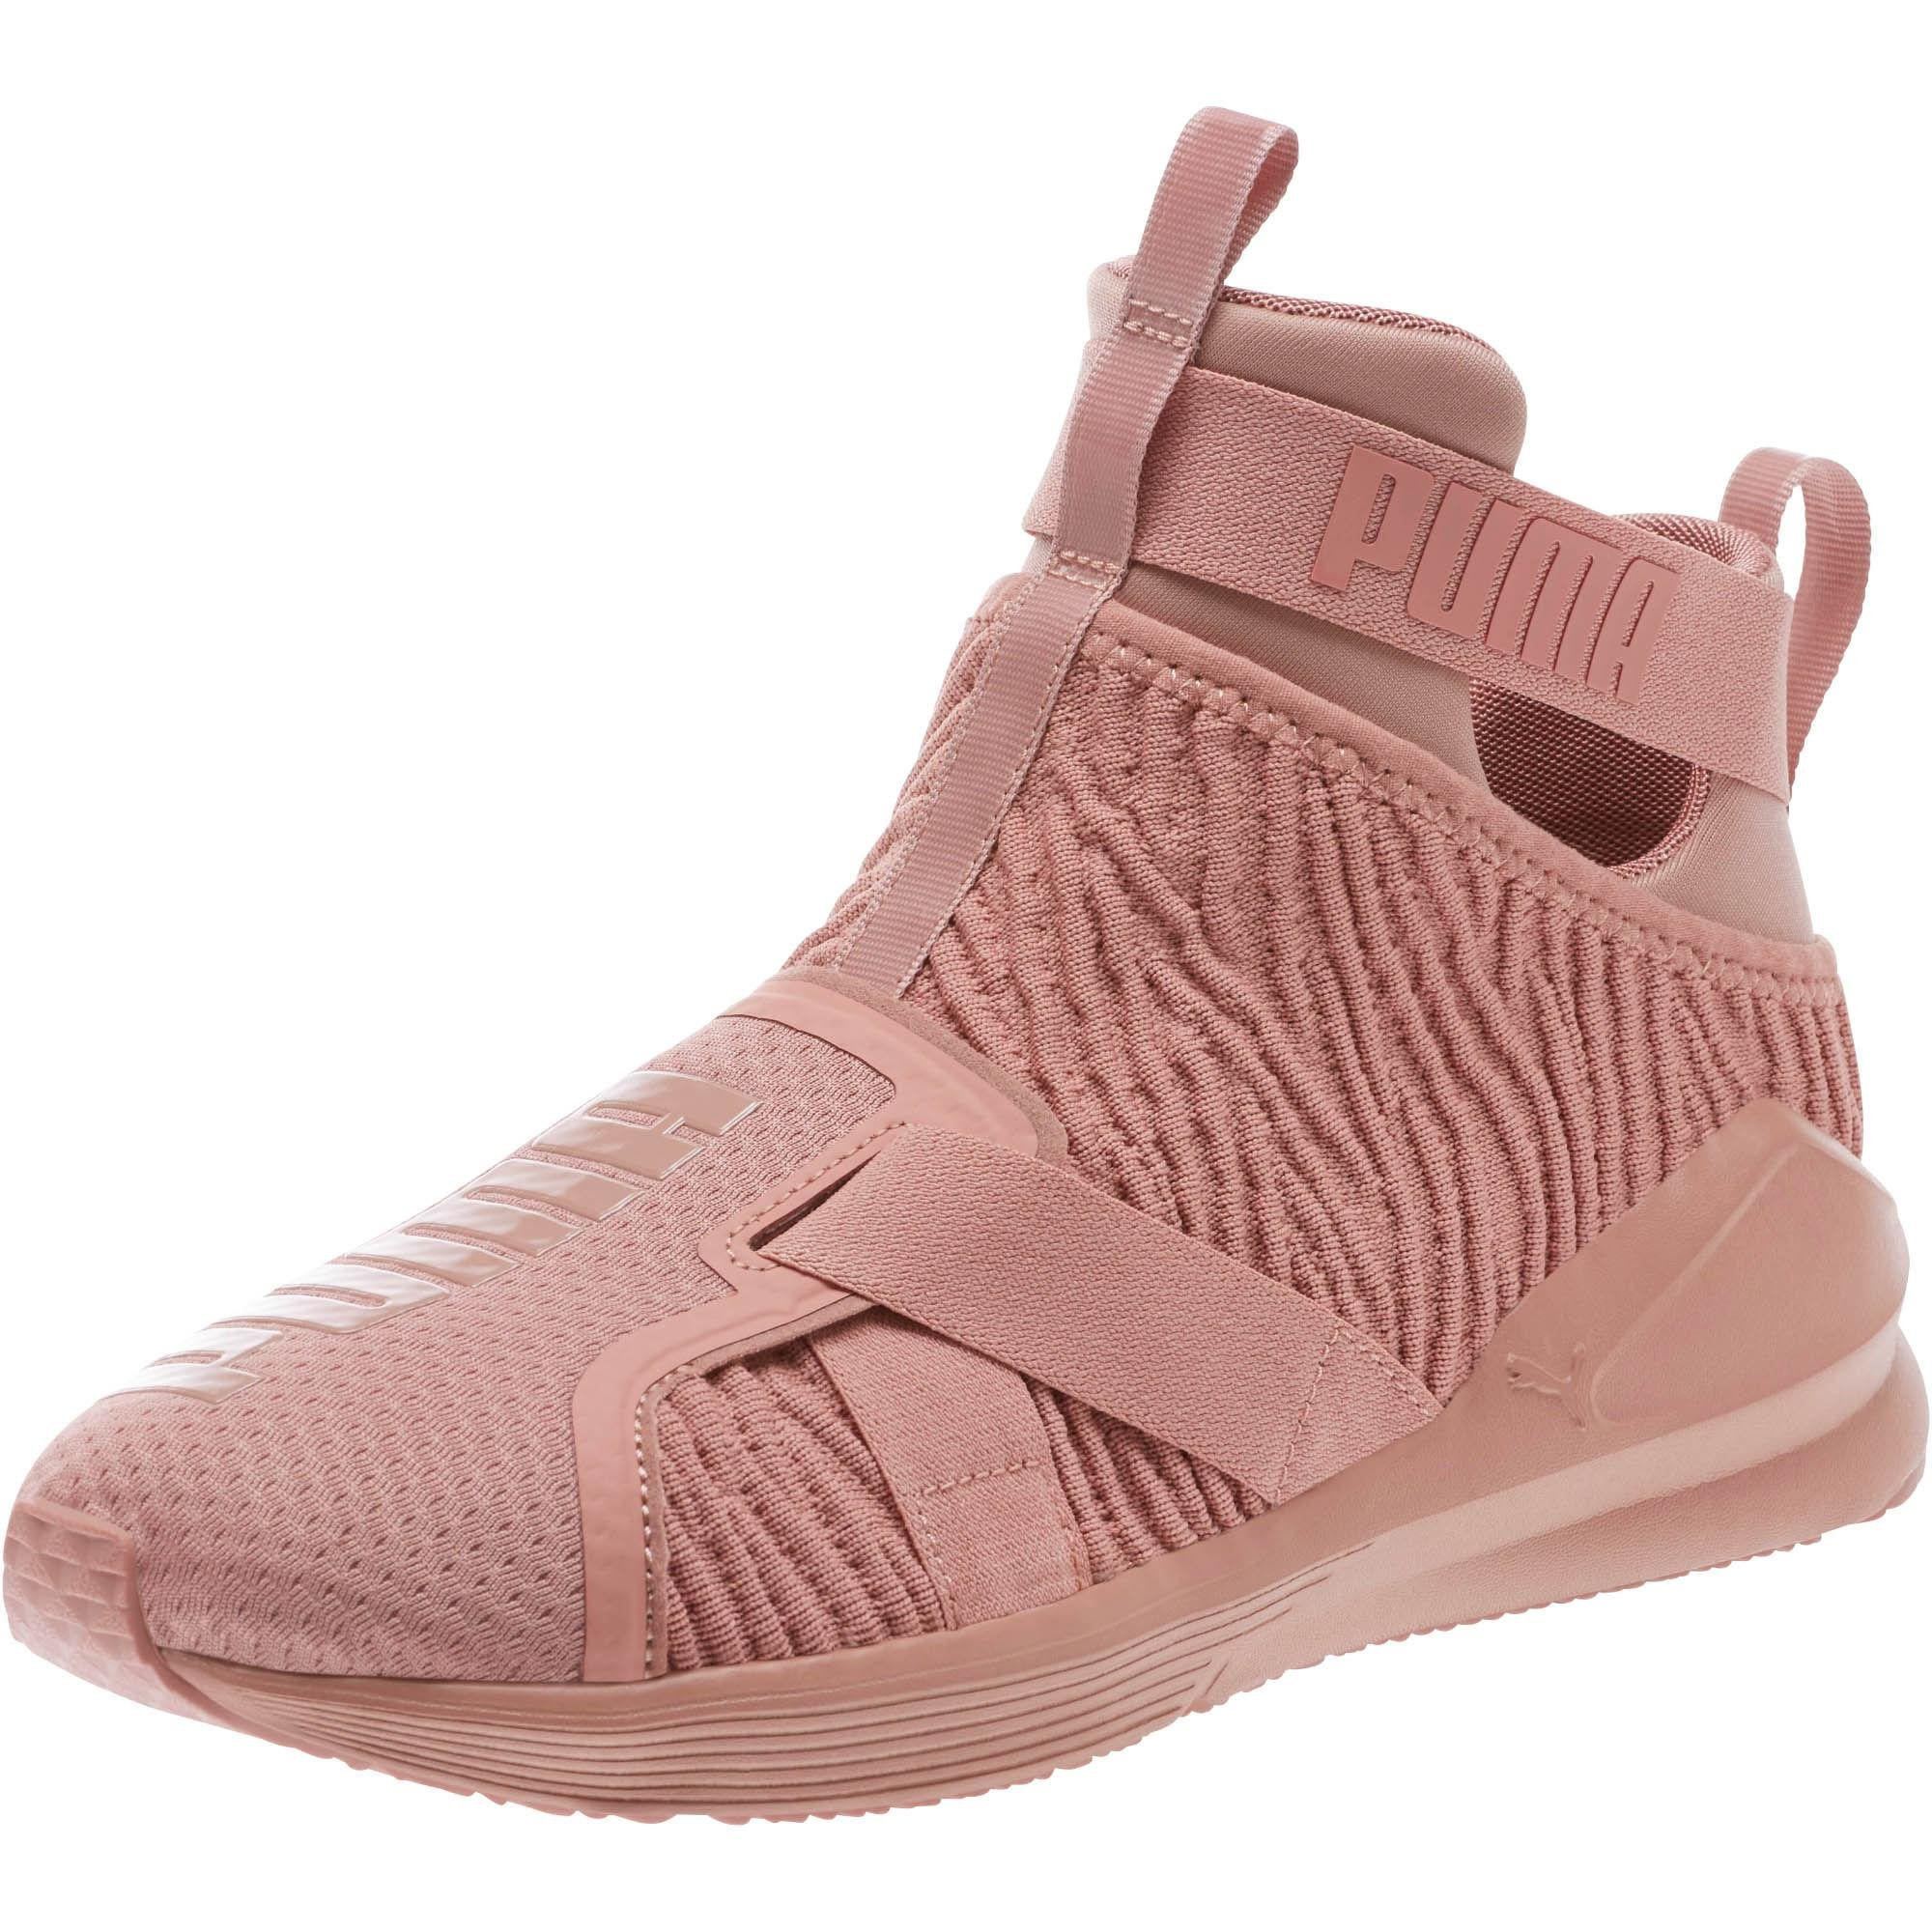 Lyst - PUMA Fierce Strap Hypernature Women s Training Shoes in Brown 798d506a5